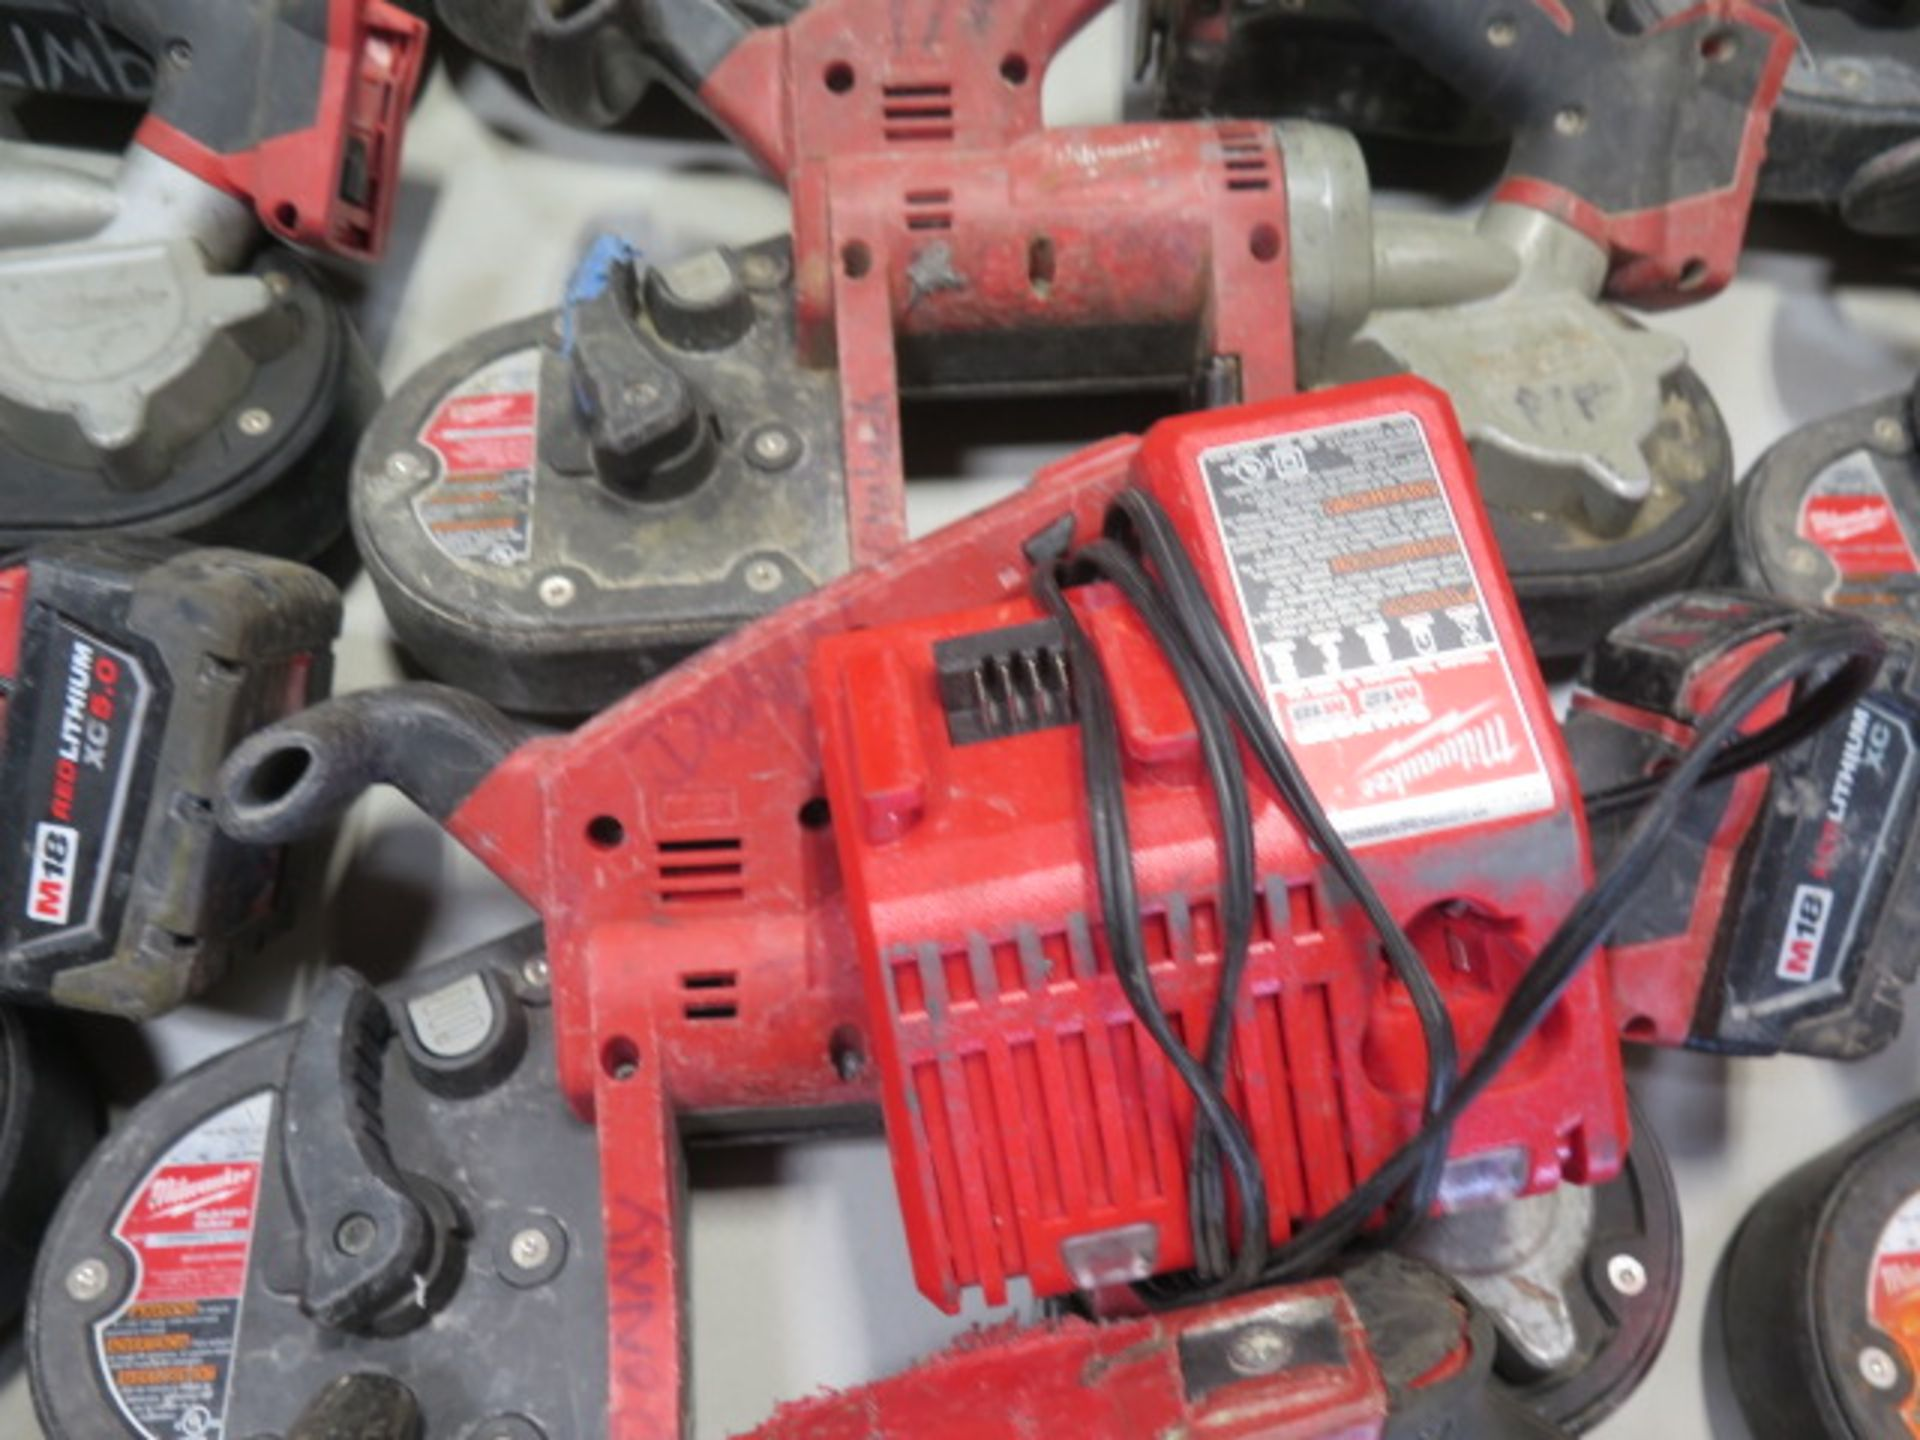 Milwaukee 18 Volt Compact Portable Band Saws (4) (SOLD AS-IS - NO WARRANTY) - Image 5 of 7